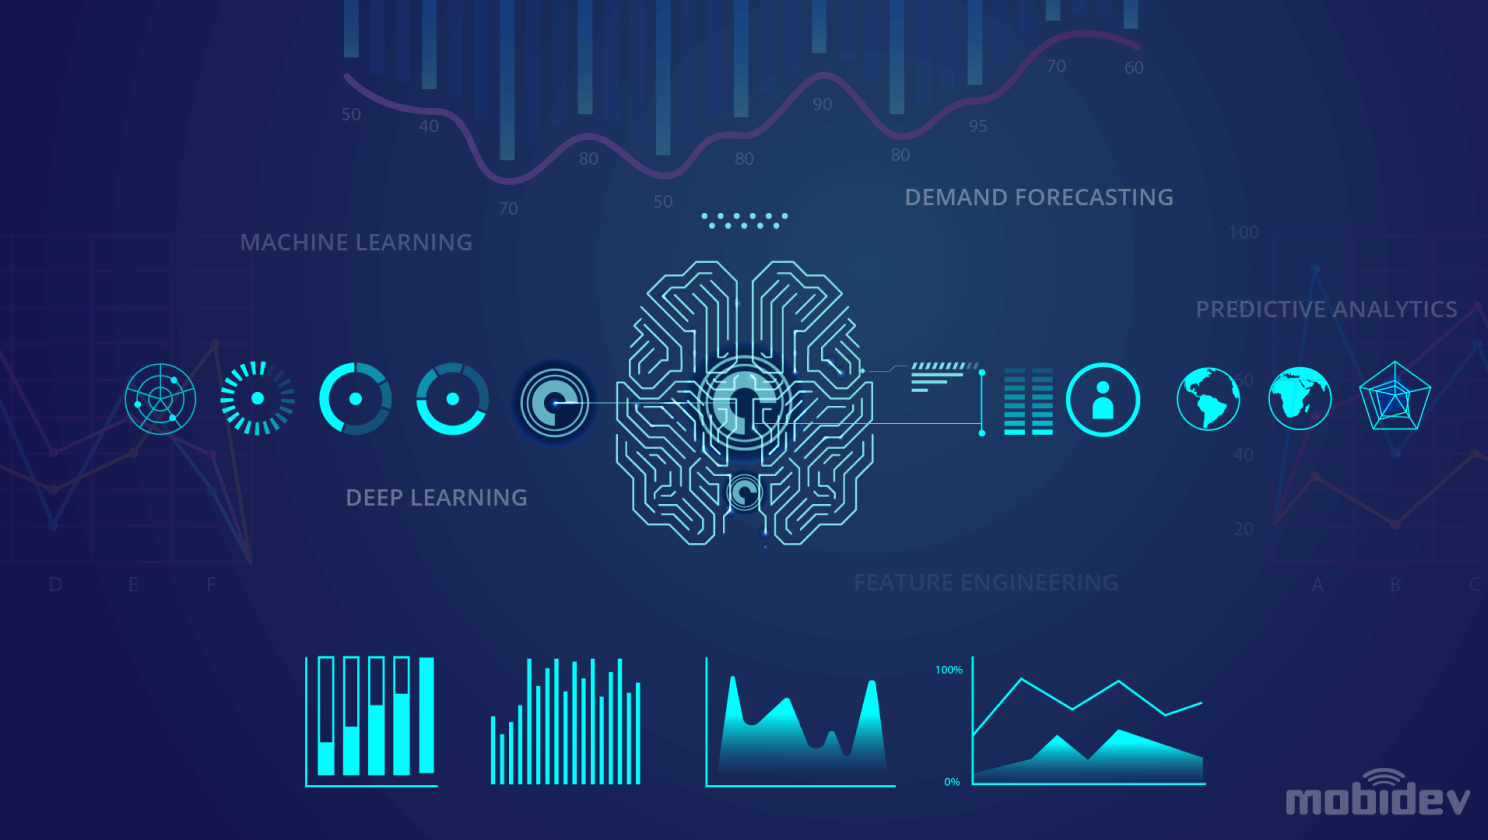 How to Apply Machine Learning in Demand Forecasting for Retail?